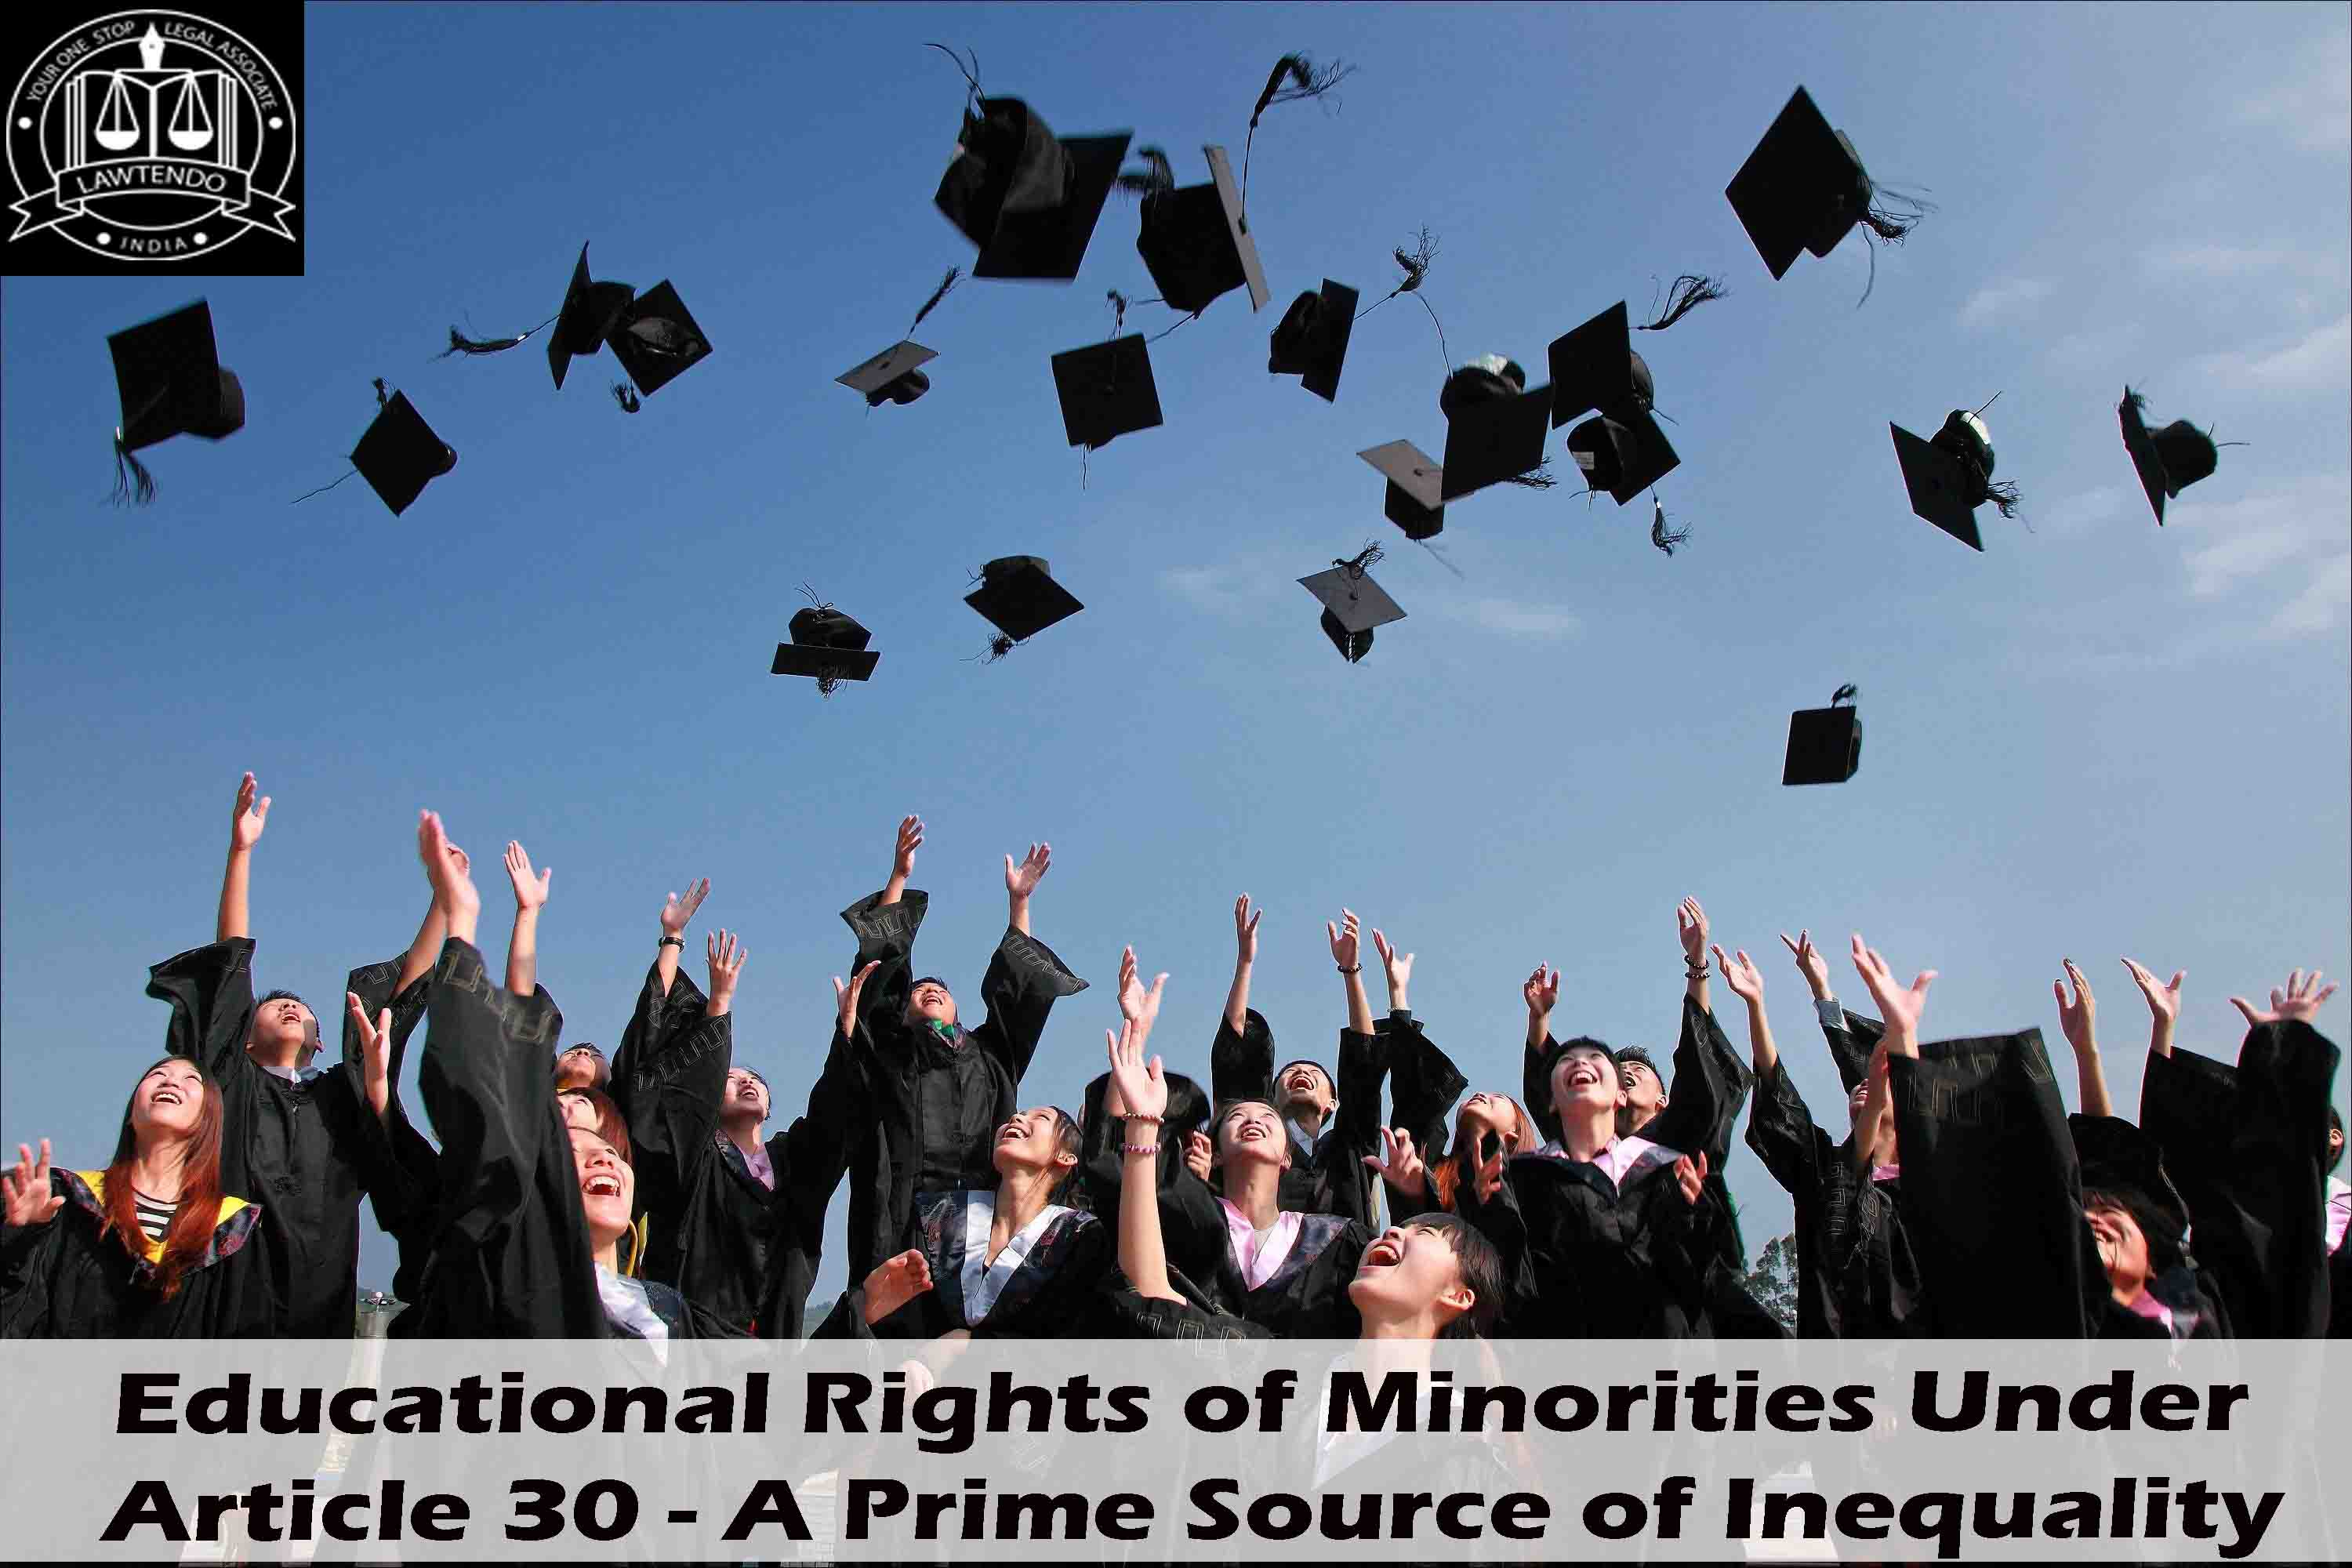 Educational Rights of Minorities Under Article 30 - A Prime Source of Inequality